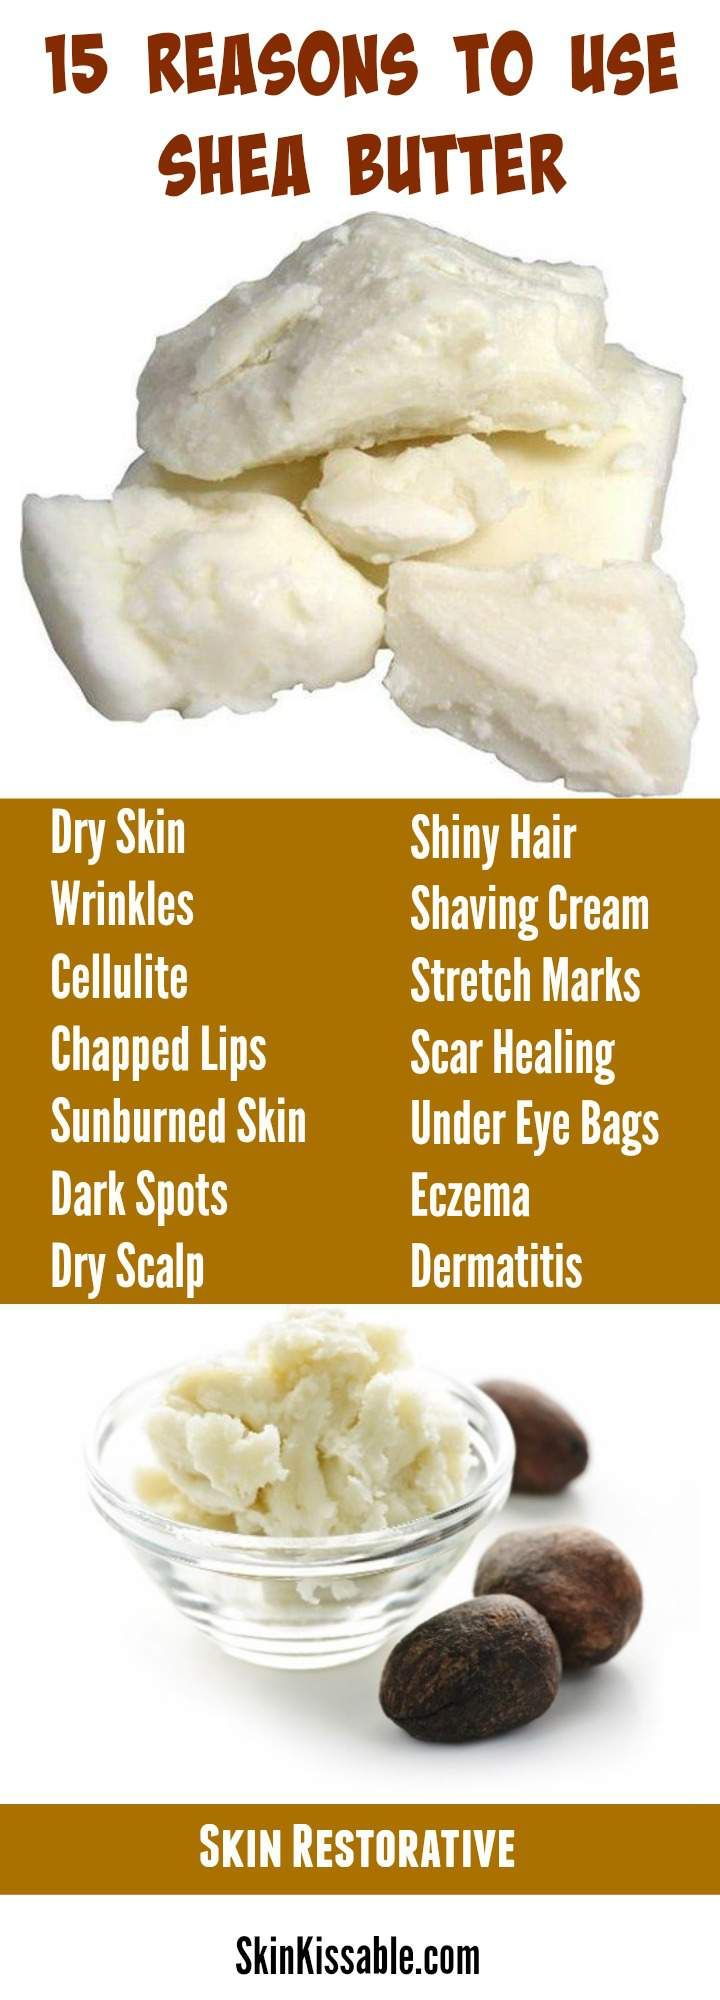 Shea butter is a natural ingredient with benefits for wrinkles, dry skin, stretch marks, hair & many more skin issues.